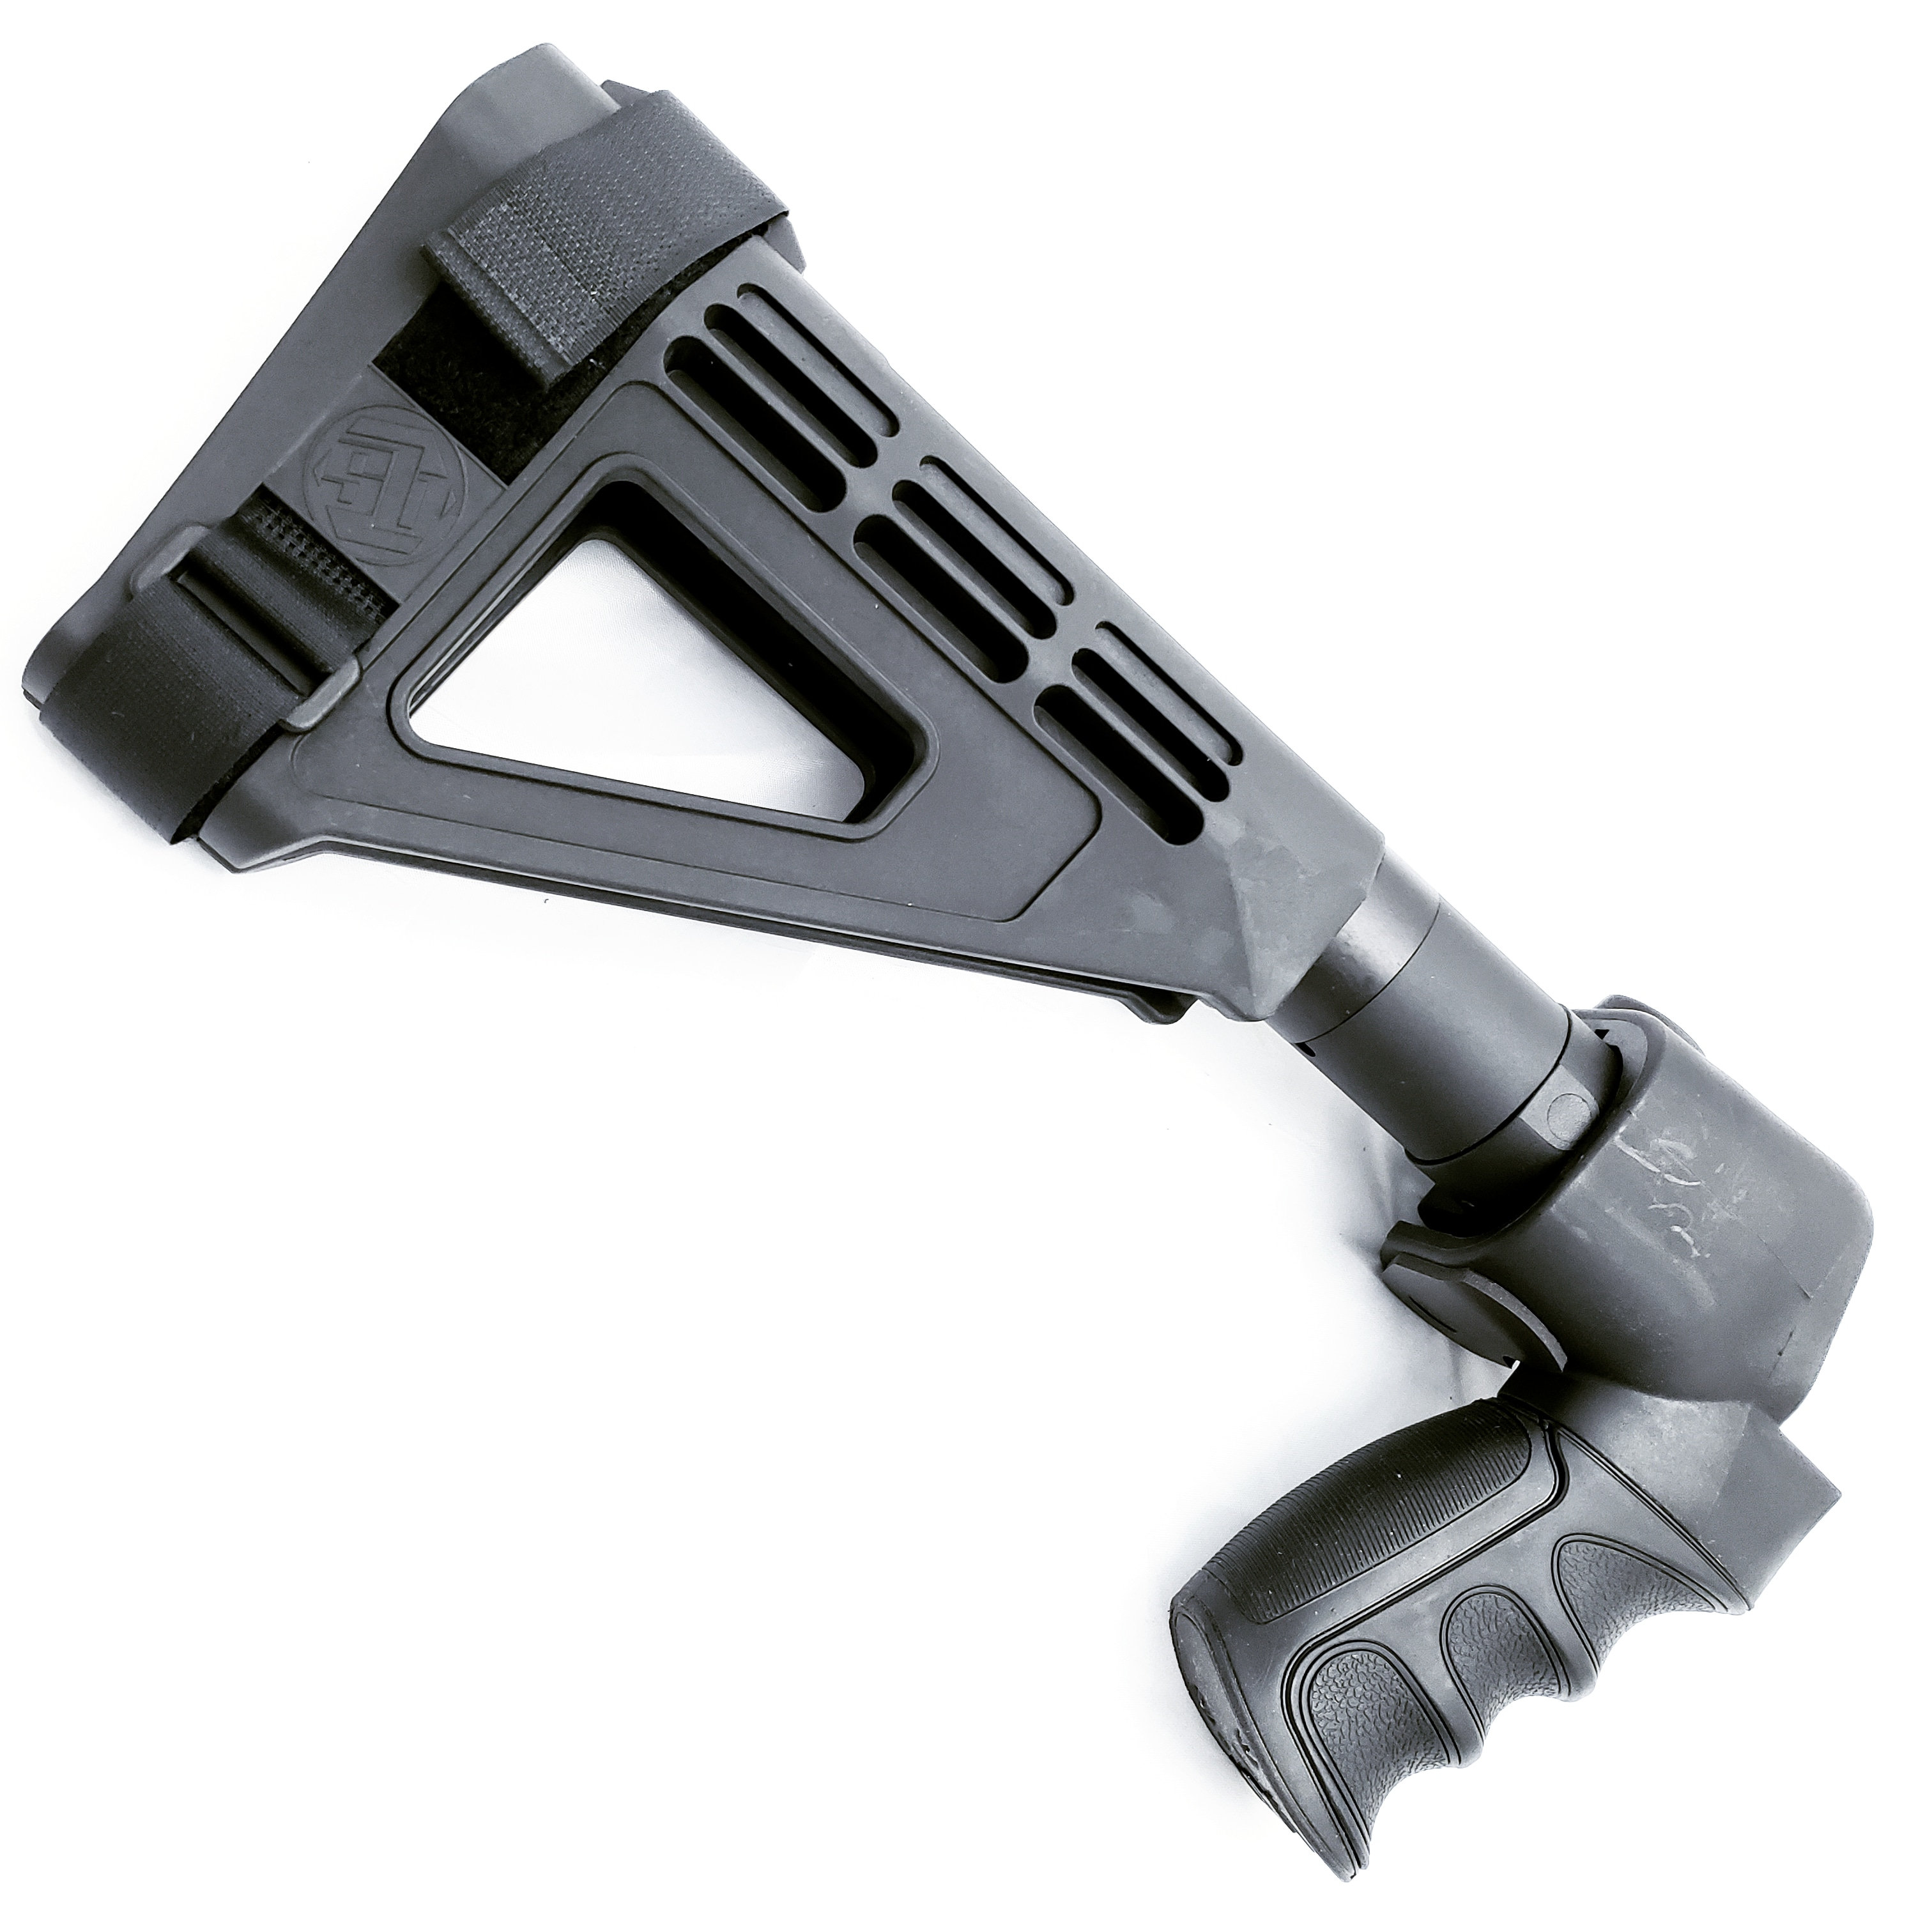 Shockwave Folding Brace Assembly with SIG Brace